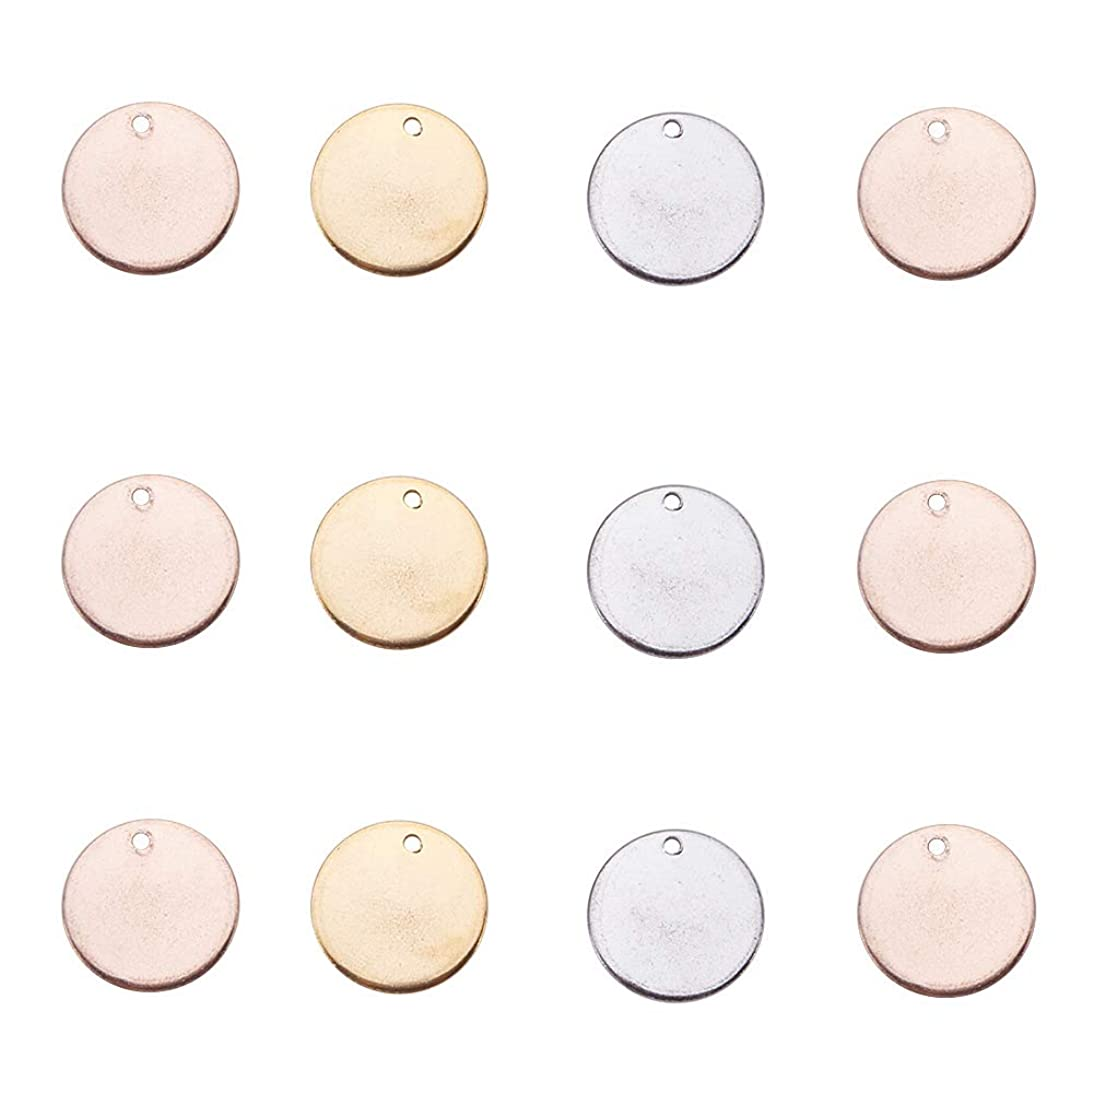 PandaHall Elite 60 Pcs 304 Stainless Steel Flat Round Blank Stamping Tag Pendants Charms Diameter 15mm Jewelry Making 3 Colors